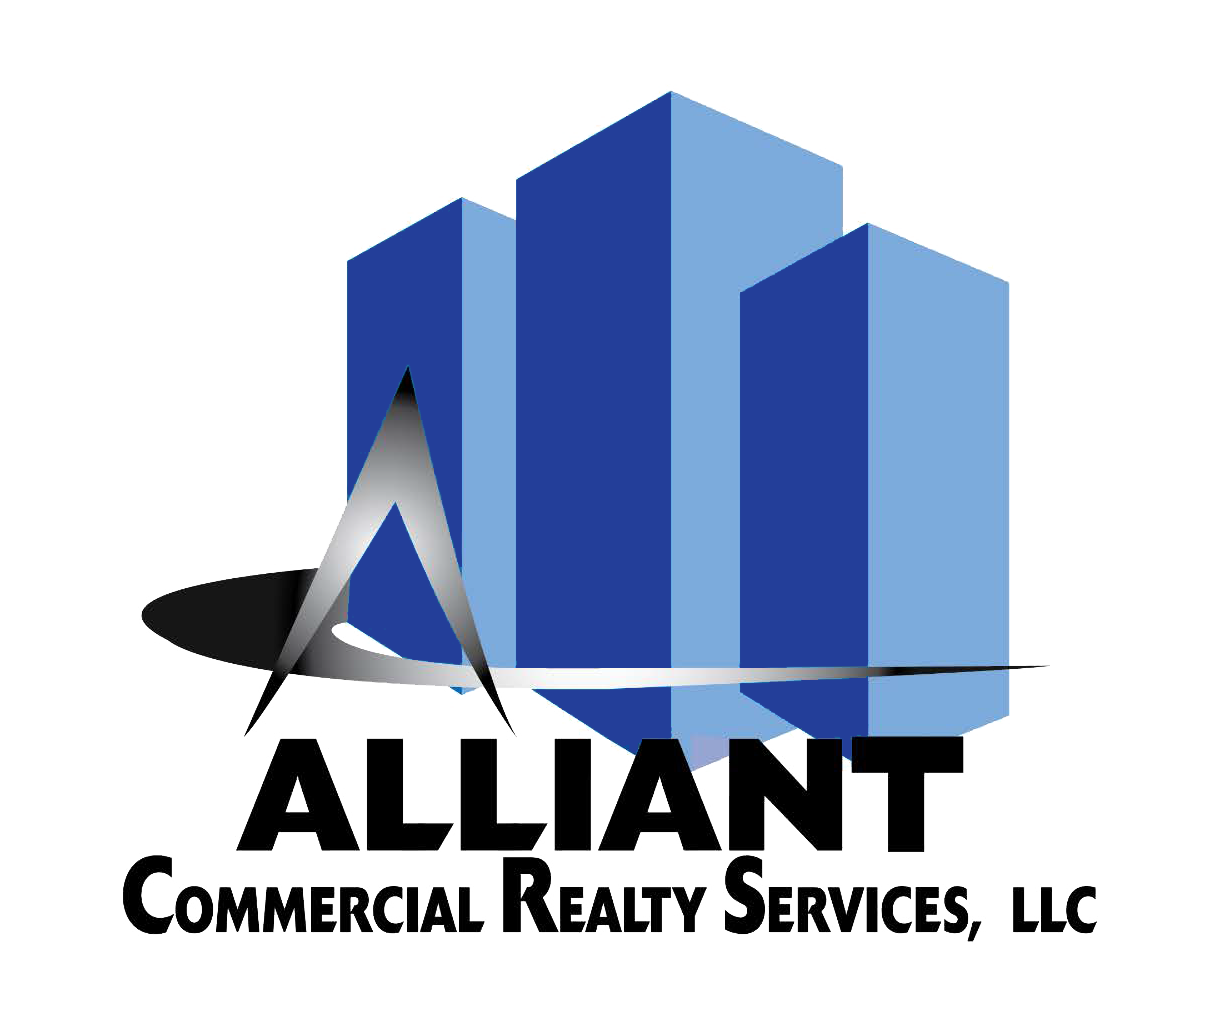 Alliant Commercial Realty Services